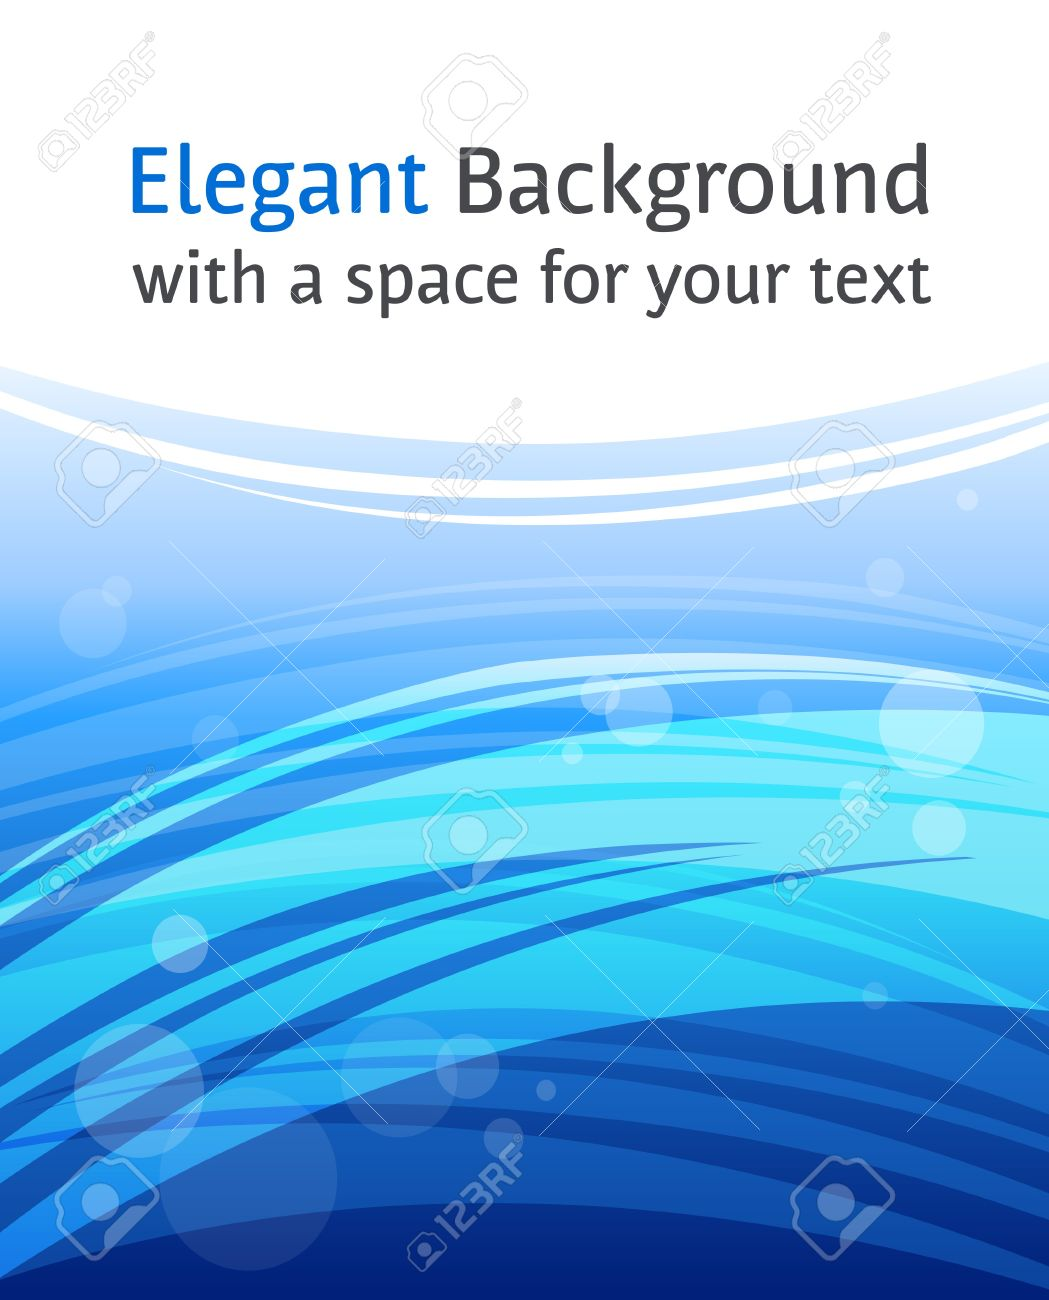 Abstract business blue background in letter format - for print and web - presentation, brochure cover, letterhead, banner, website background Stock Photo - 7860019